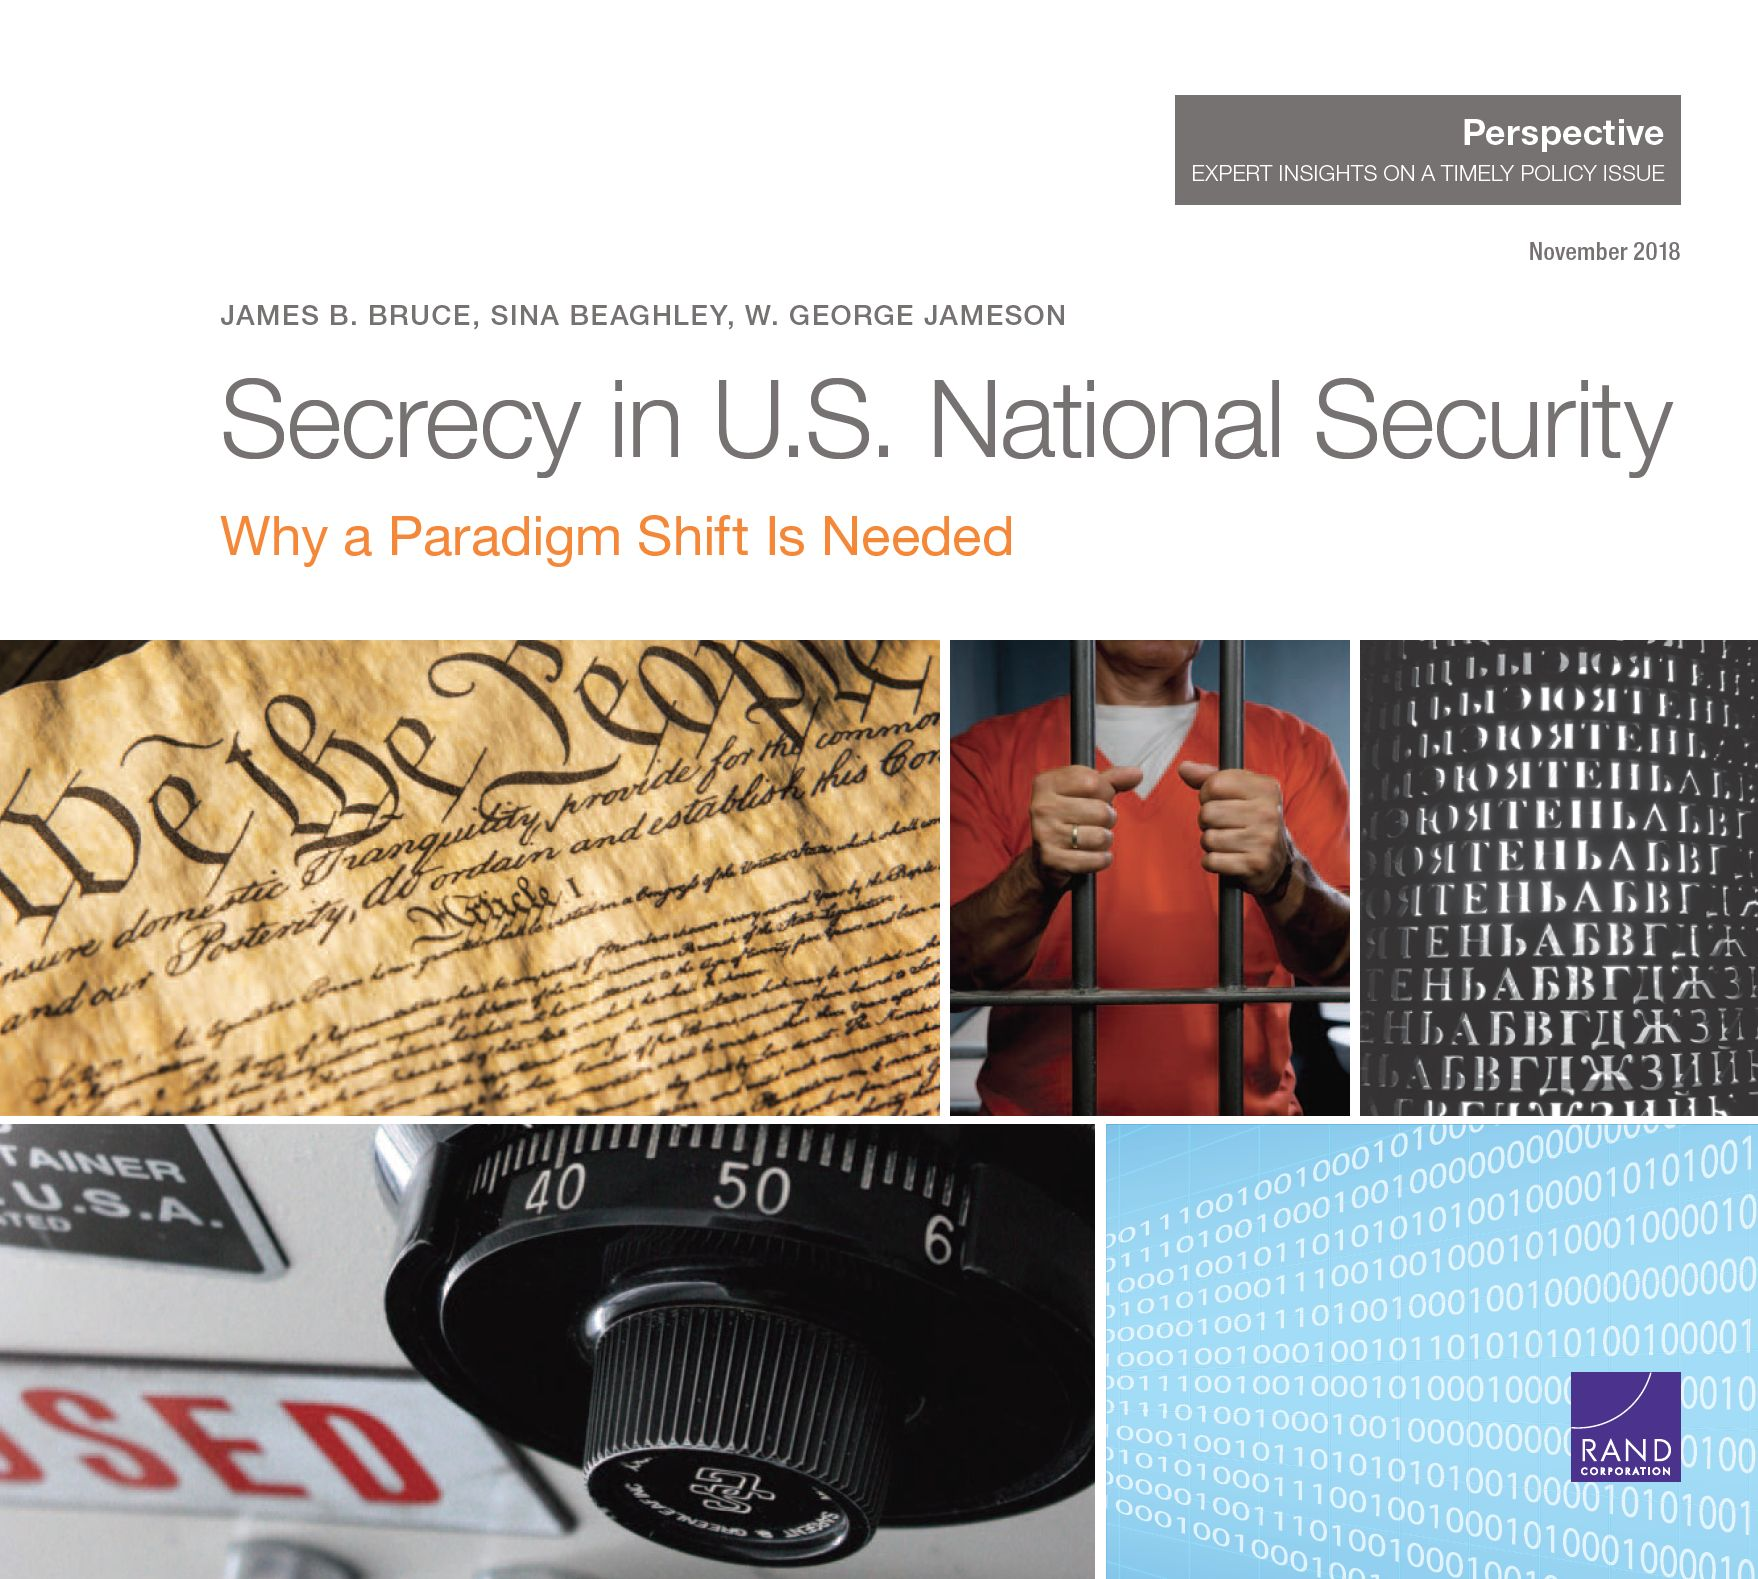 Secrecy in US National Security - Why a Paradigm Shift Is Needed